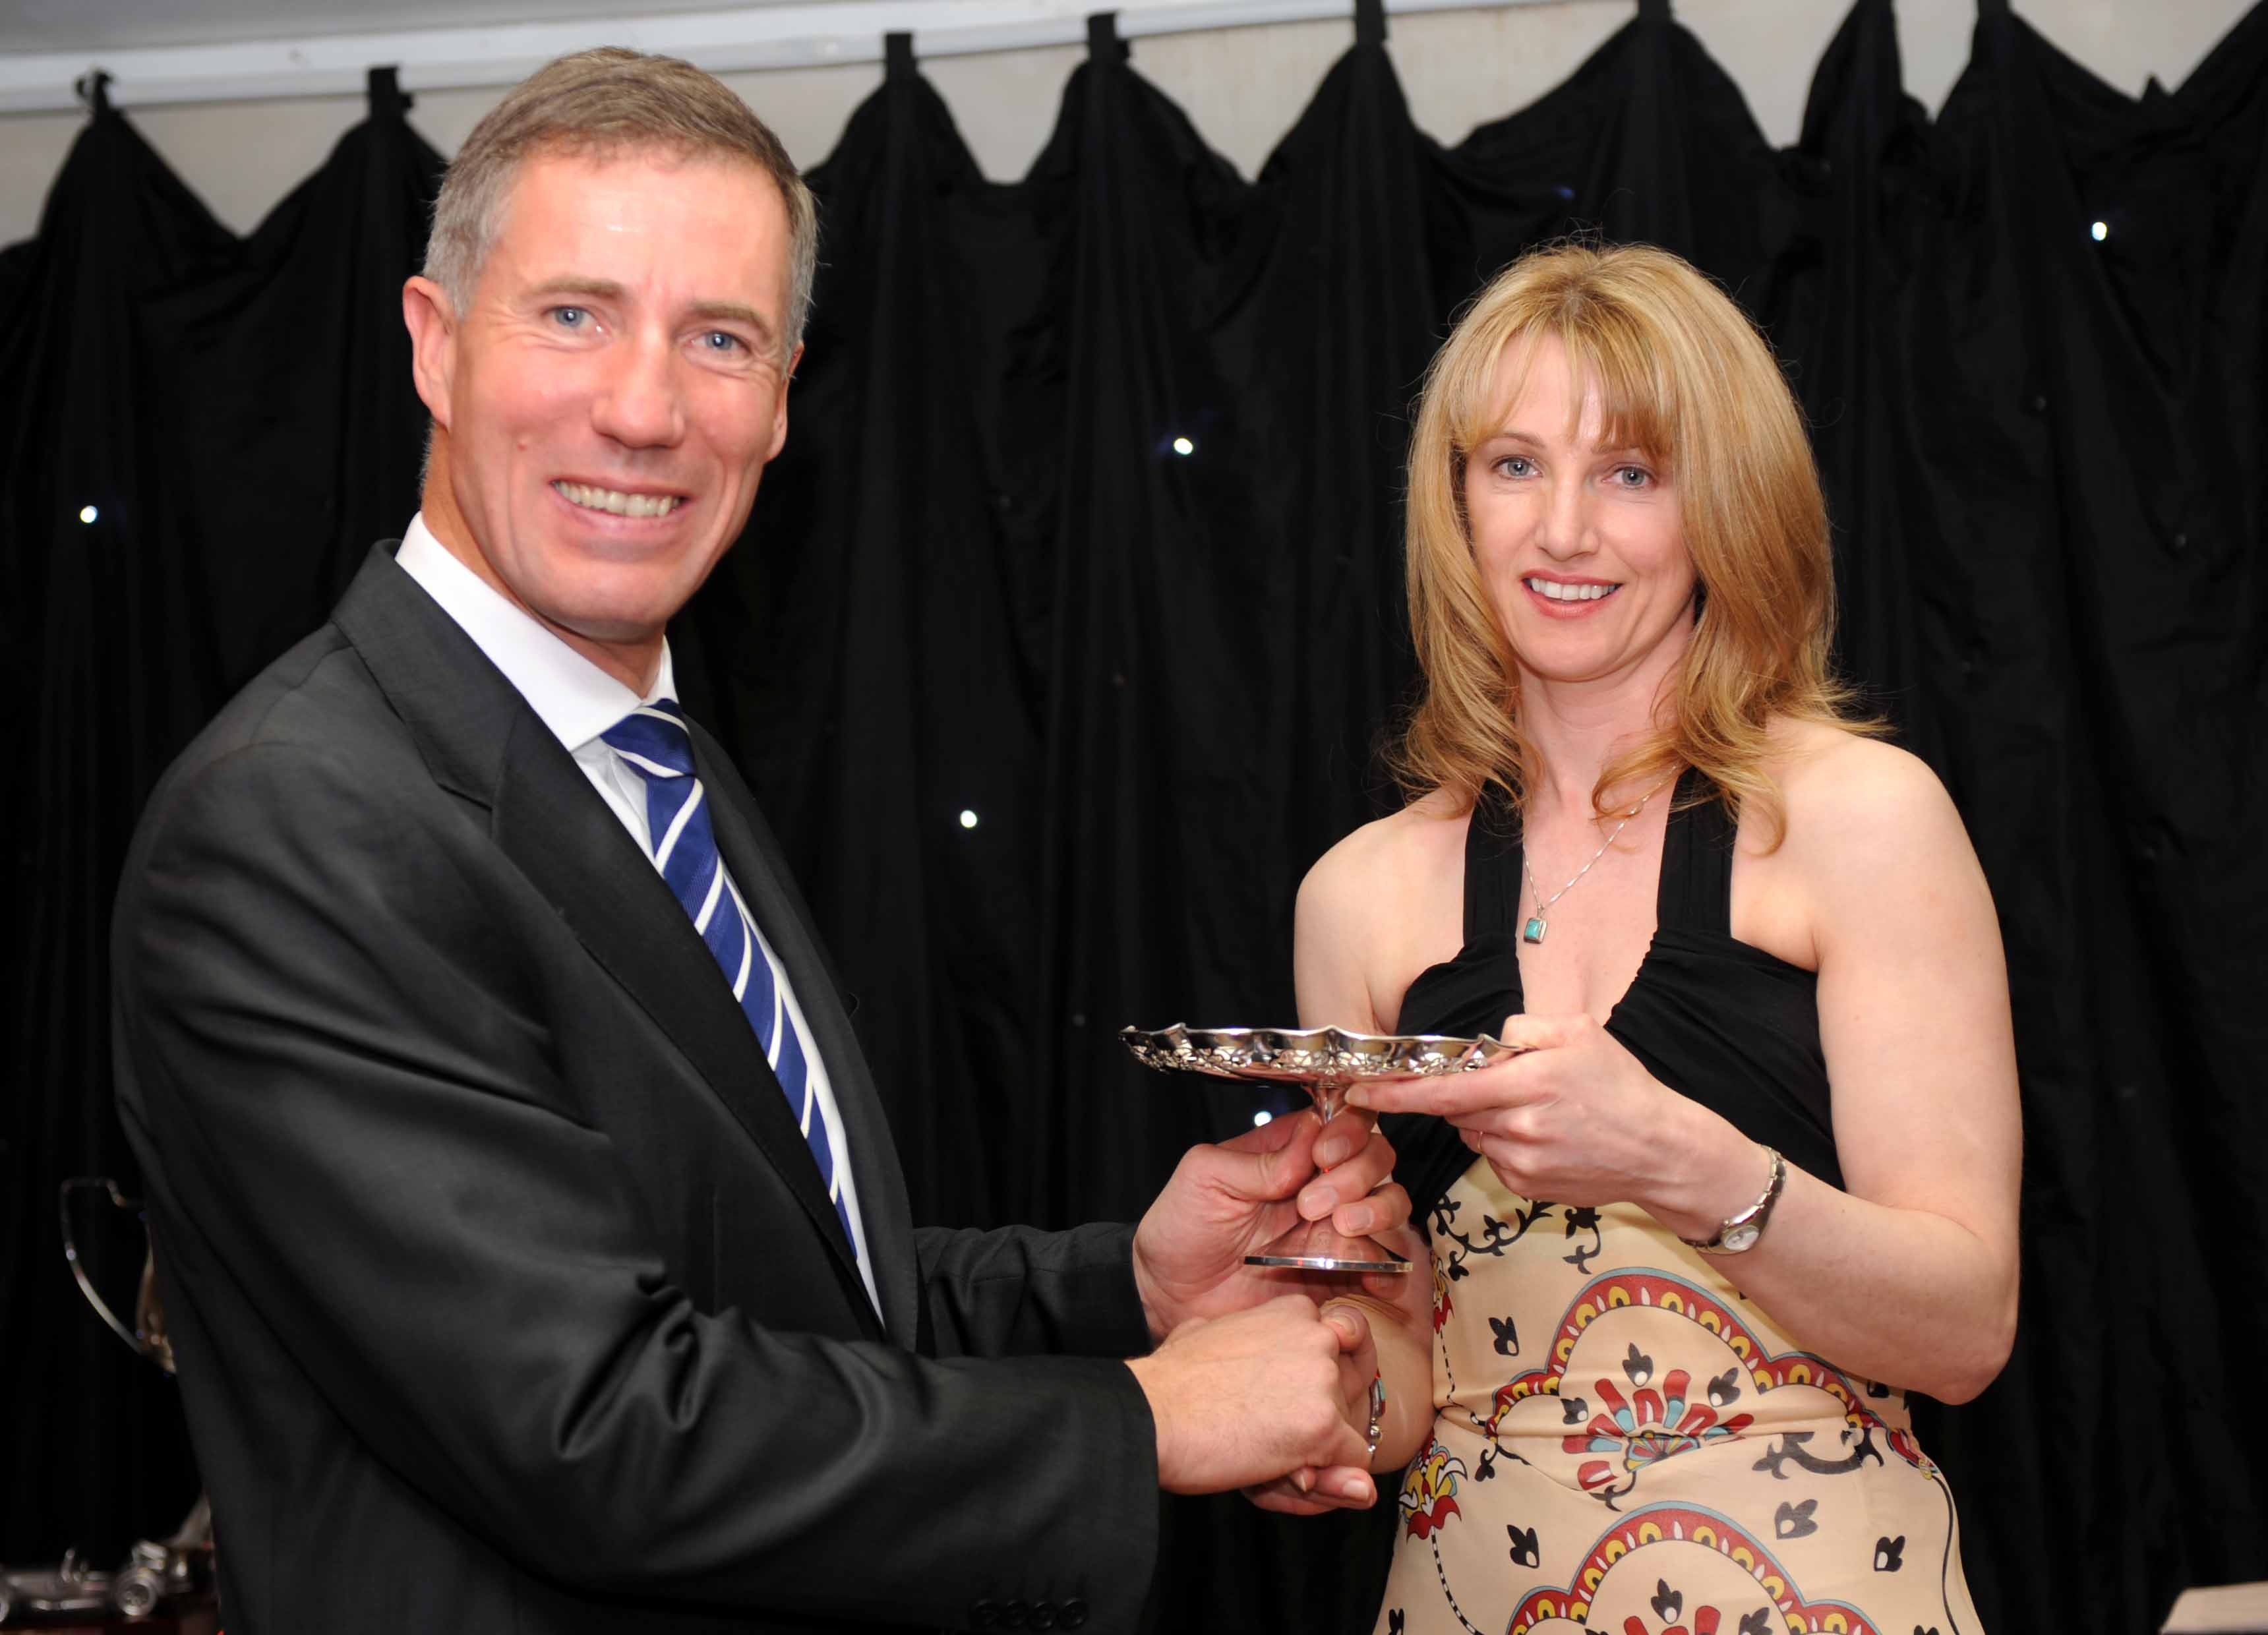 Andy Green Presents Amanda with the Goodwin Trophy